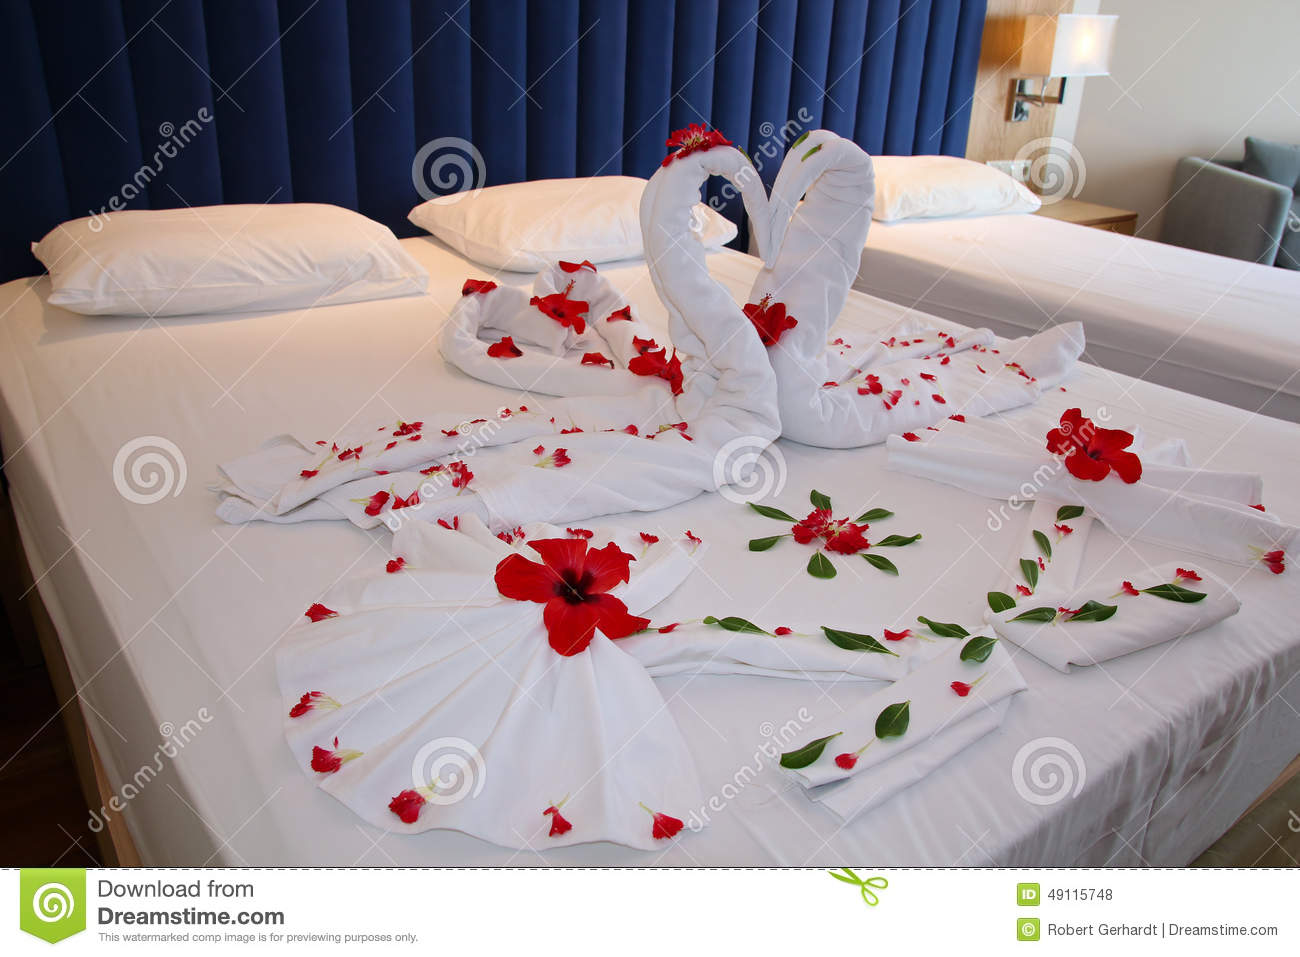 Bedroom in hotel suite with heart shaped decorations stock for Bed decoration with rose petals